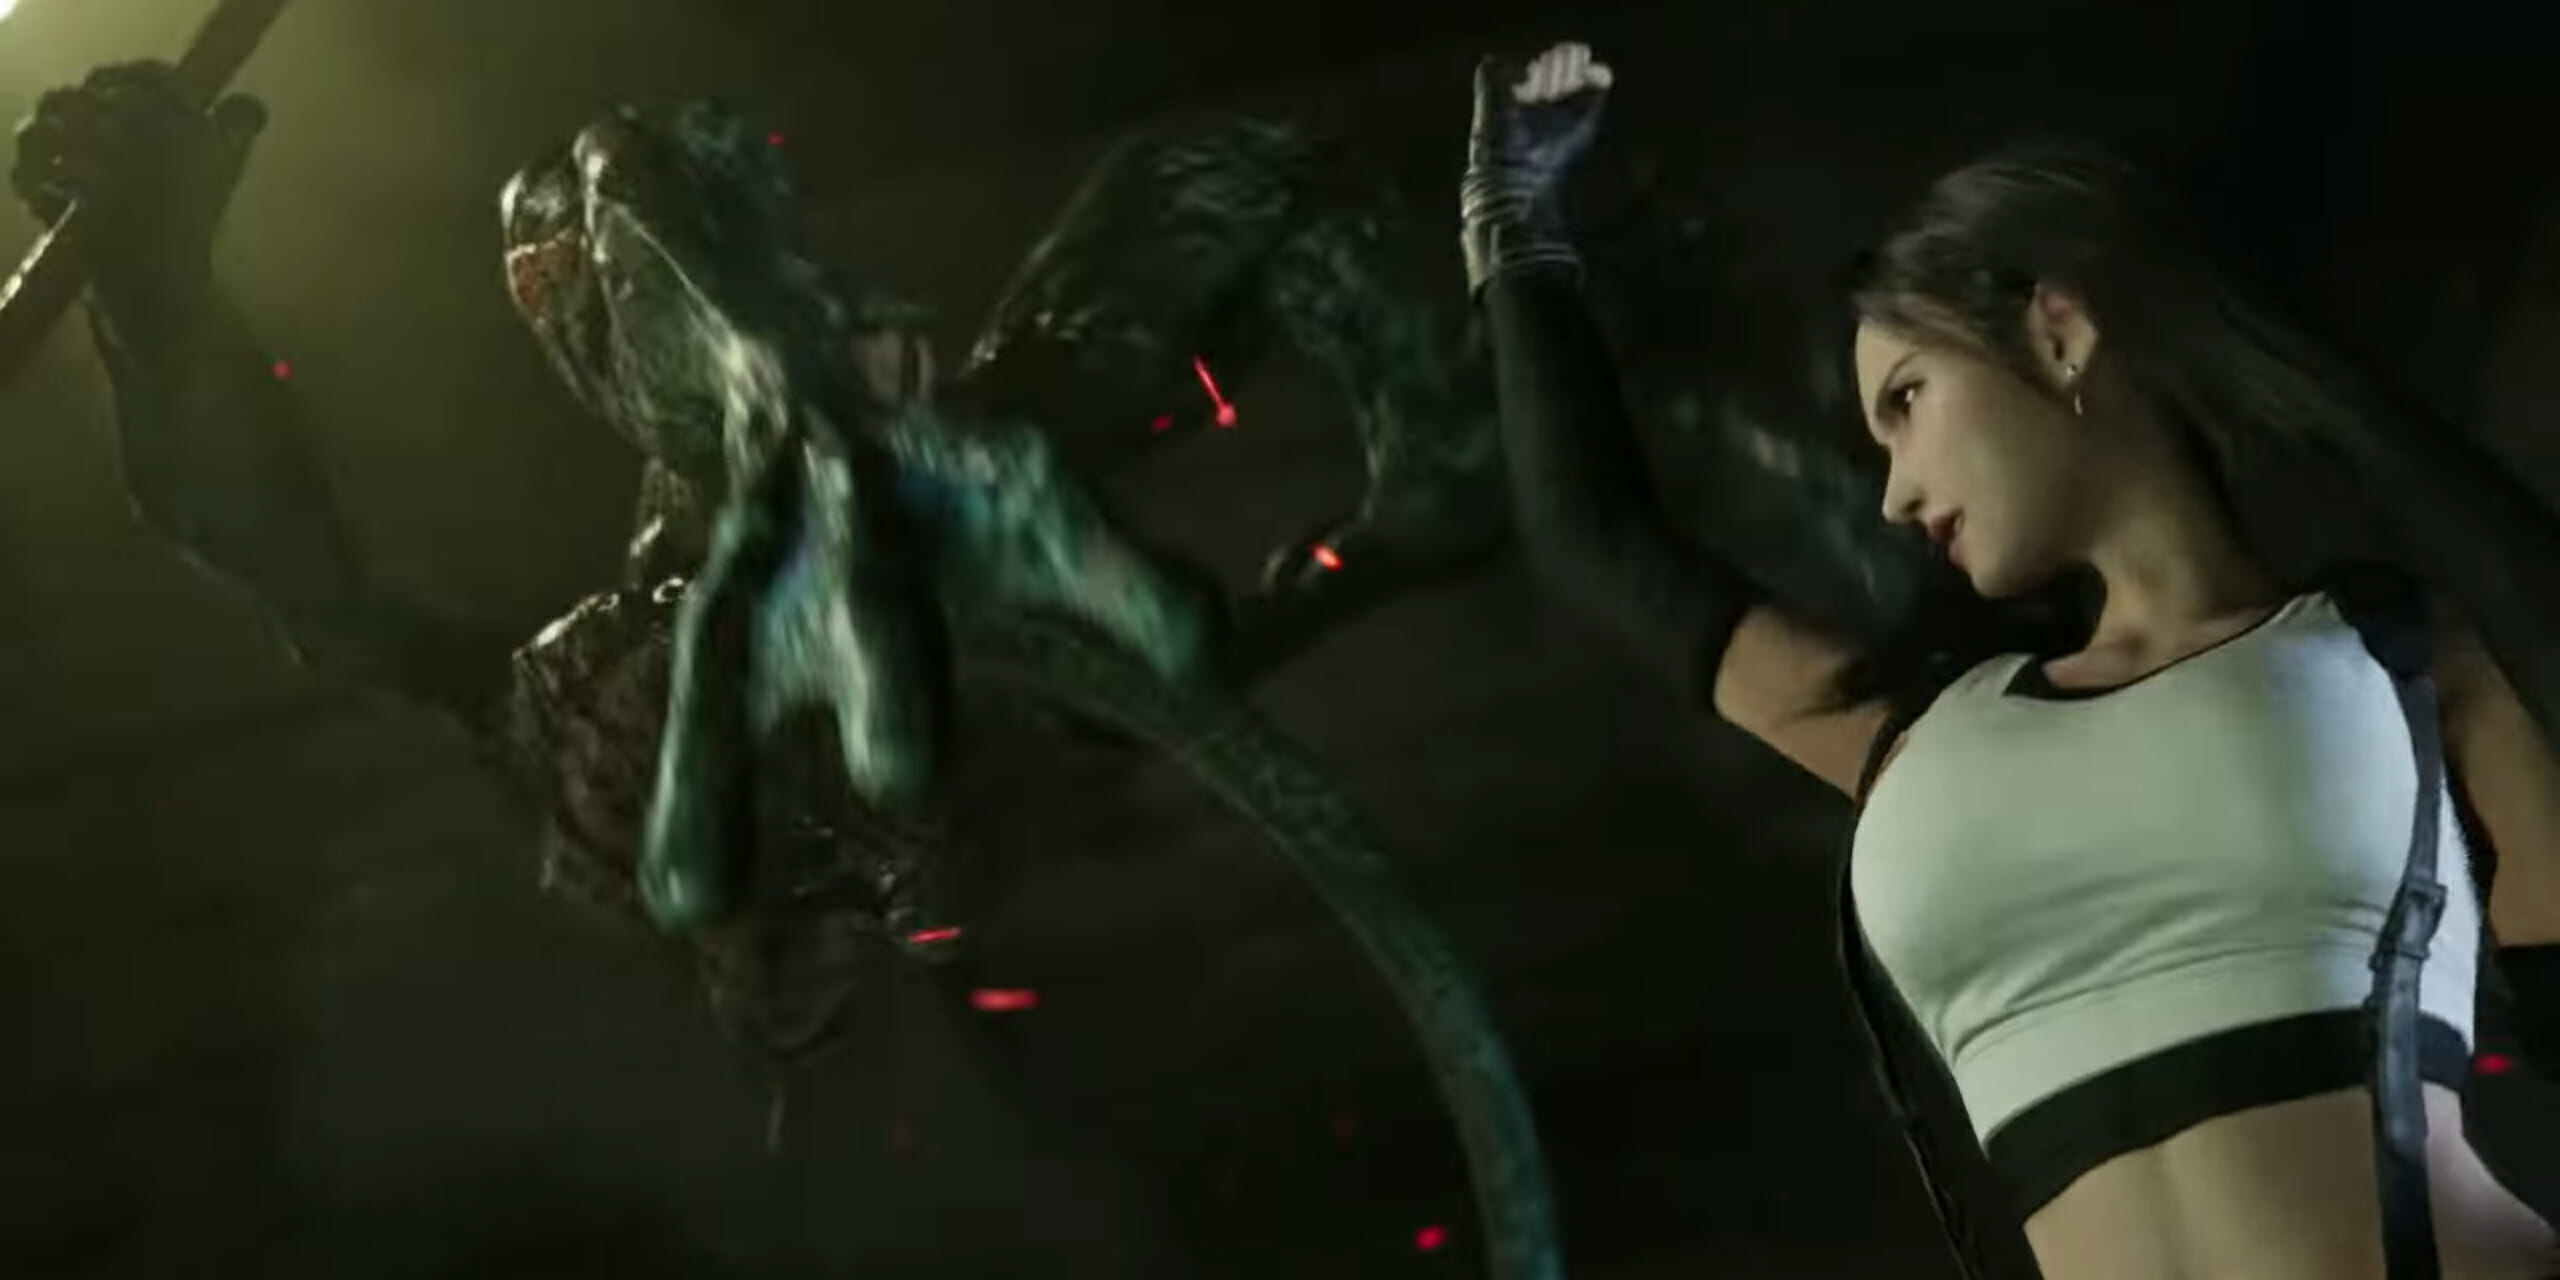 Final Fantasy 7 Remake Still Has the Cross-Dressing Sequence